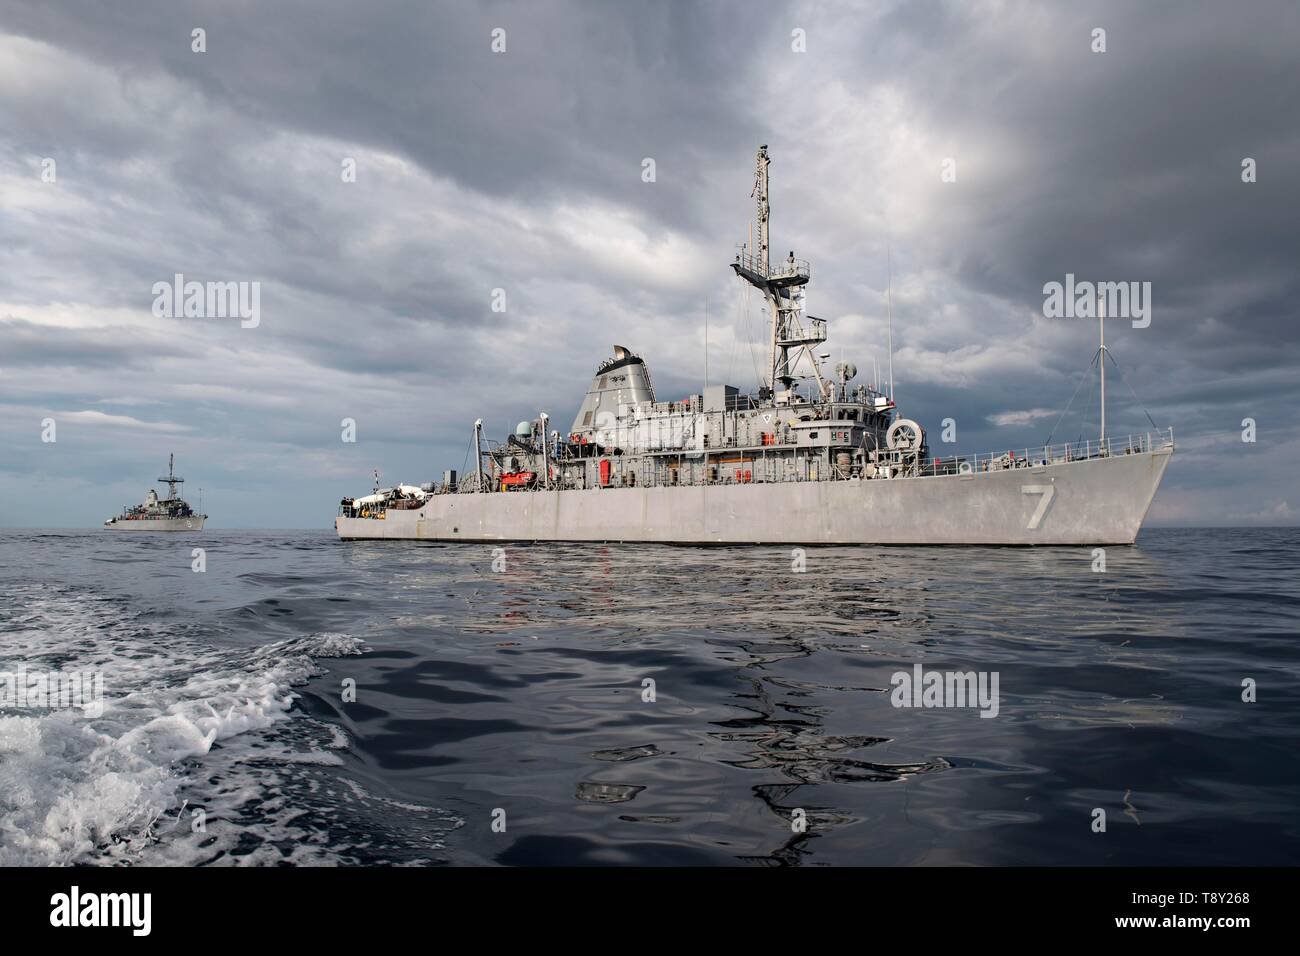 The U.S. Navy Avenger-class mine counter measure ship USS Pioneer and her sister ship USS Patriot during patrol May 8, 2019 in the South China Sea. - Stock Image